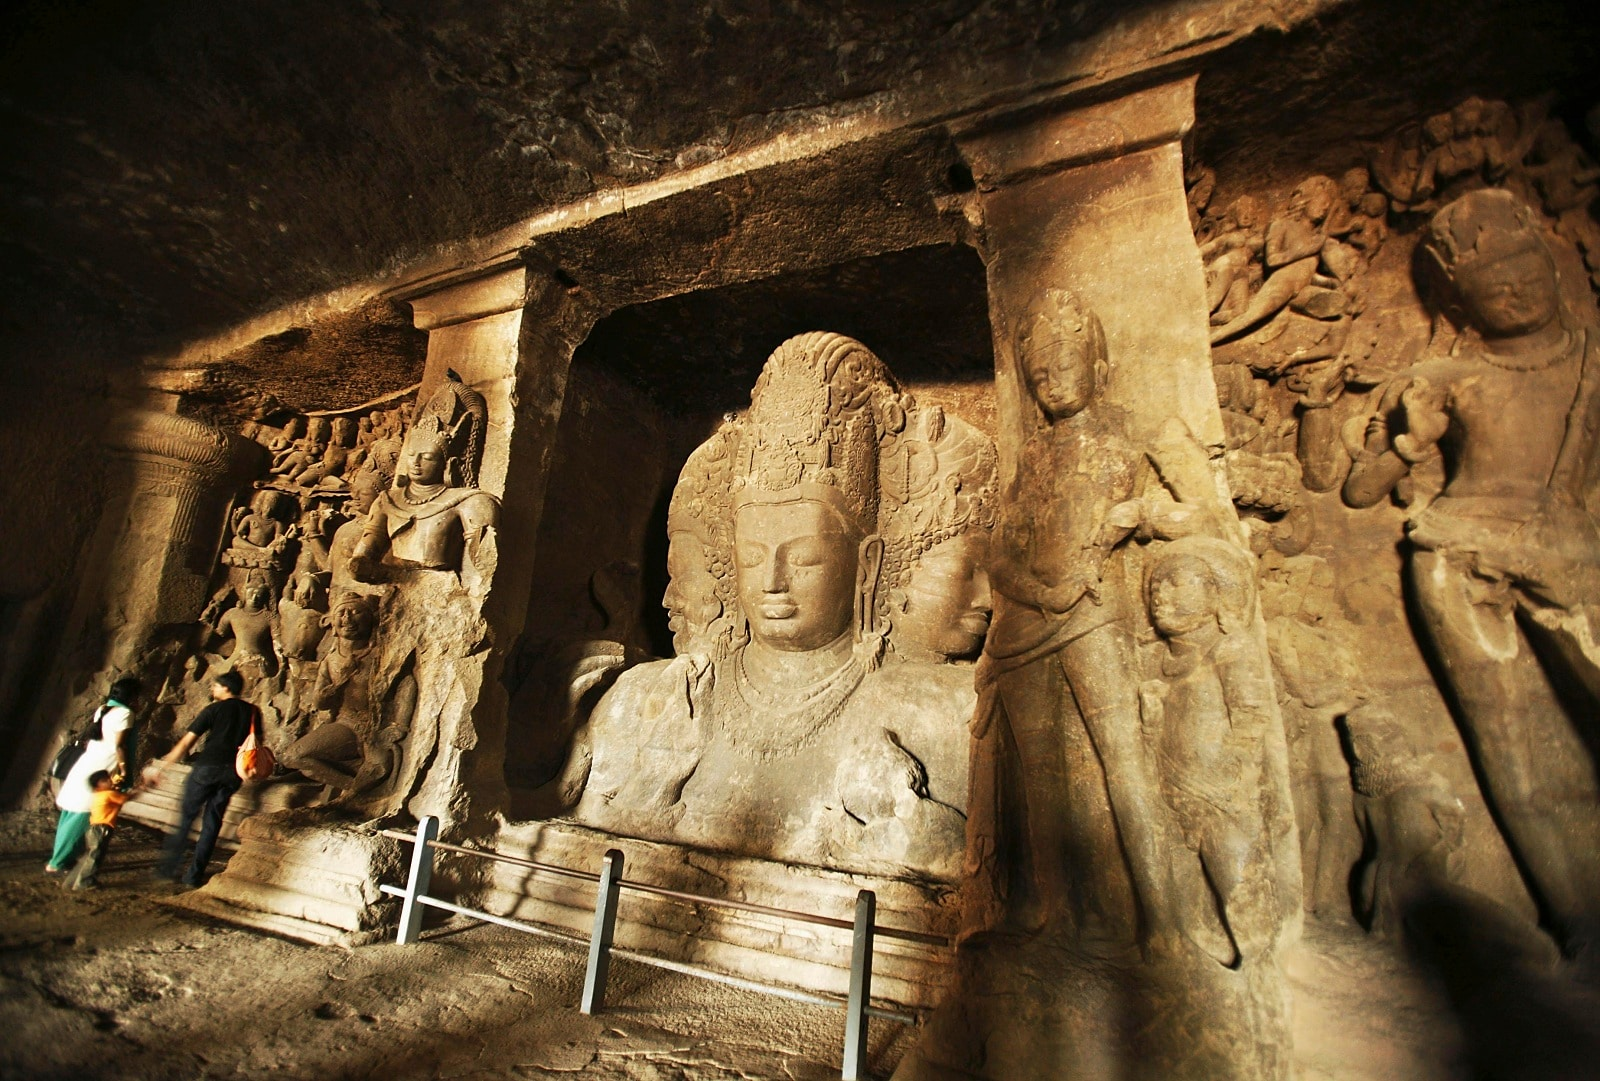 Elephanta Caves, Maharashtra: The 'City of Caves', on an island in the Sea of Oman close to Bombay, contains a collection of rock art linked to the cult of Shiva. Here, Indian art has found one of its most perfect expressions, particularly the huge high reliefs in the main cave. (Image: Reuters)